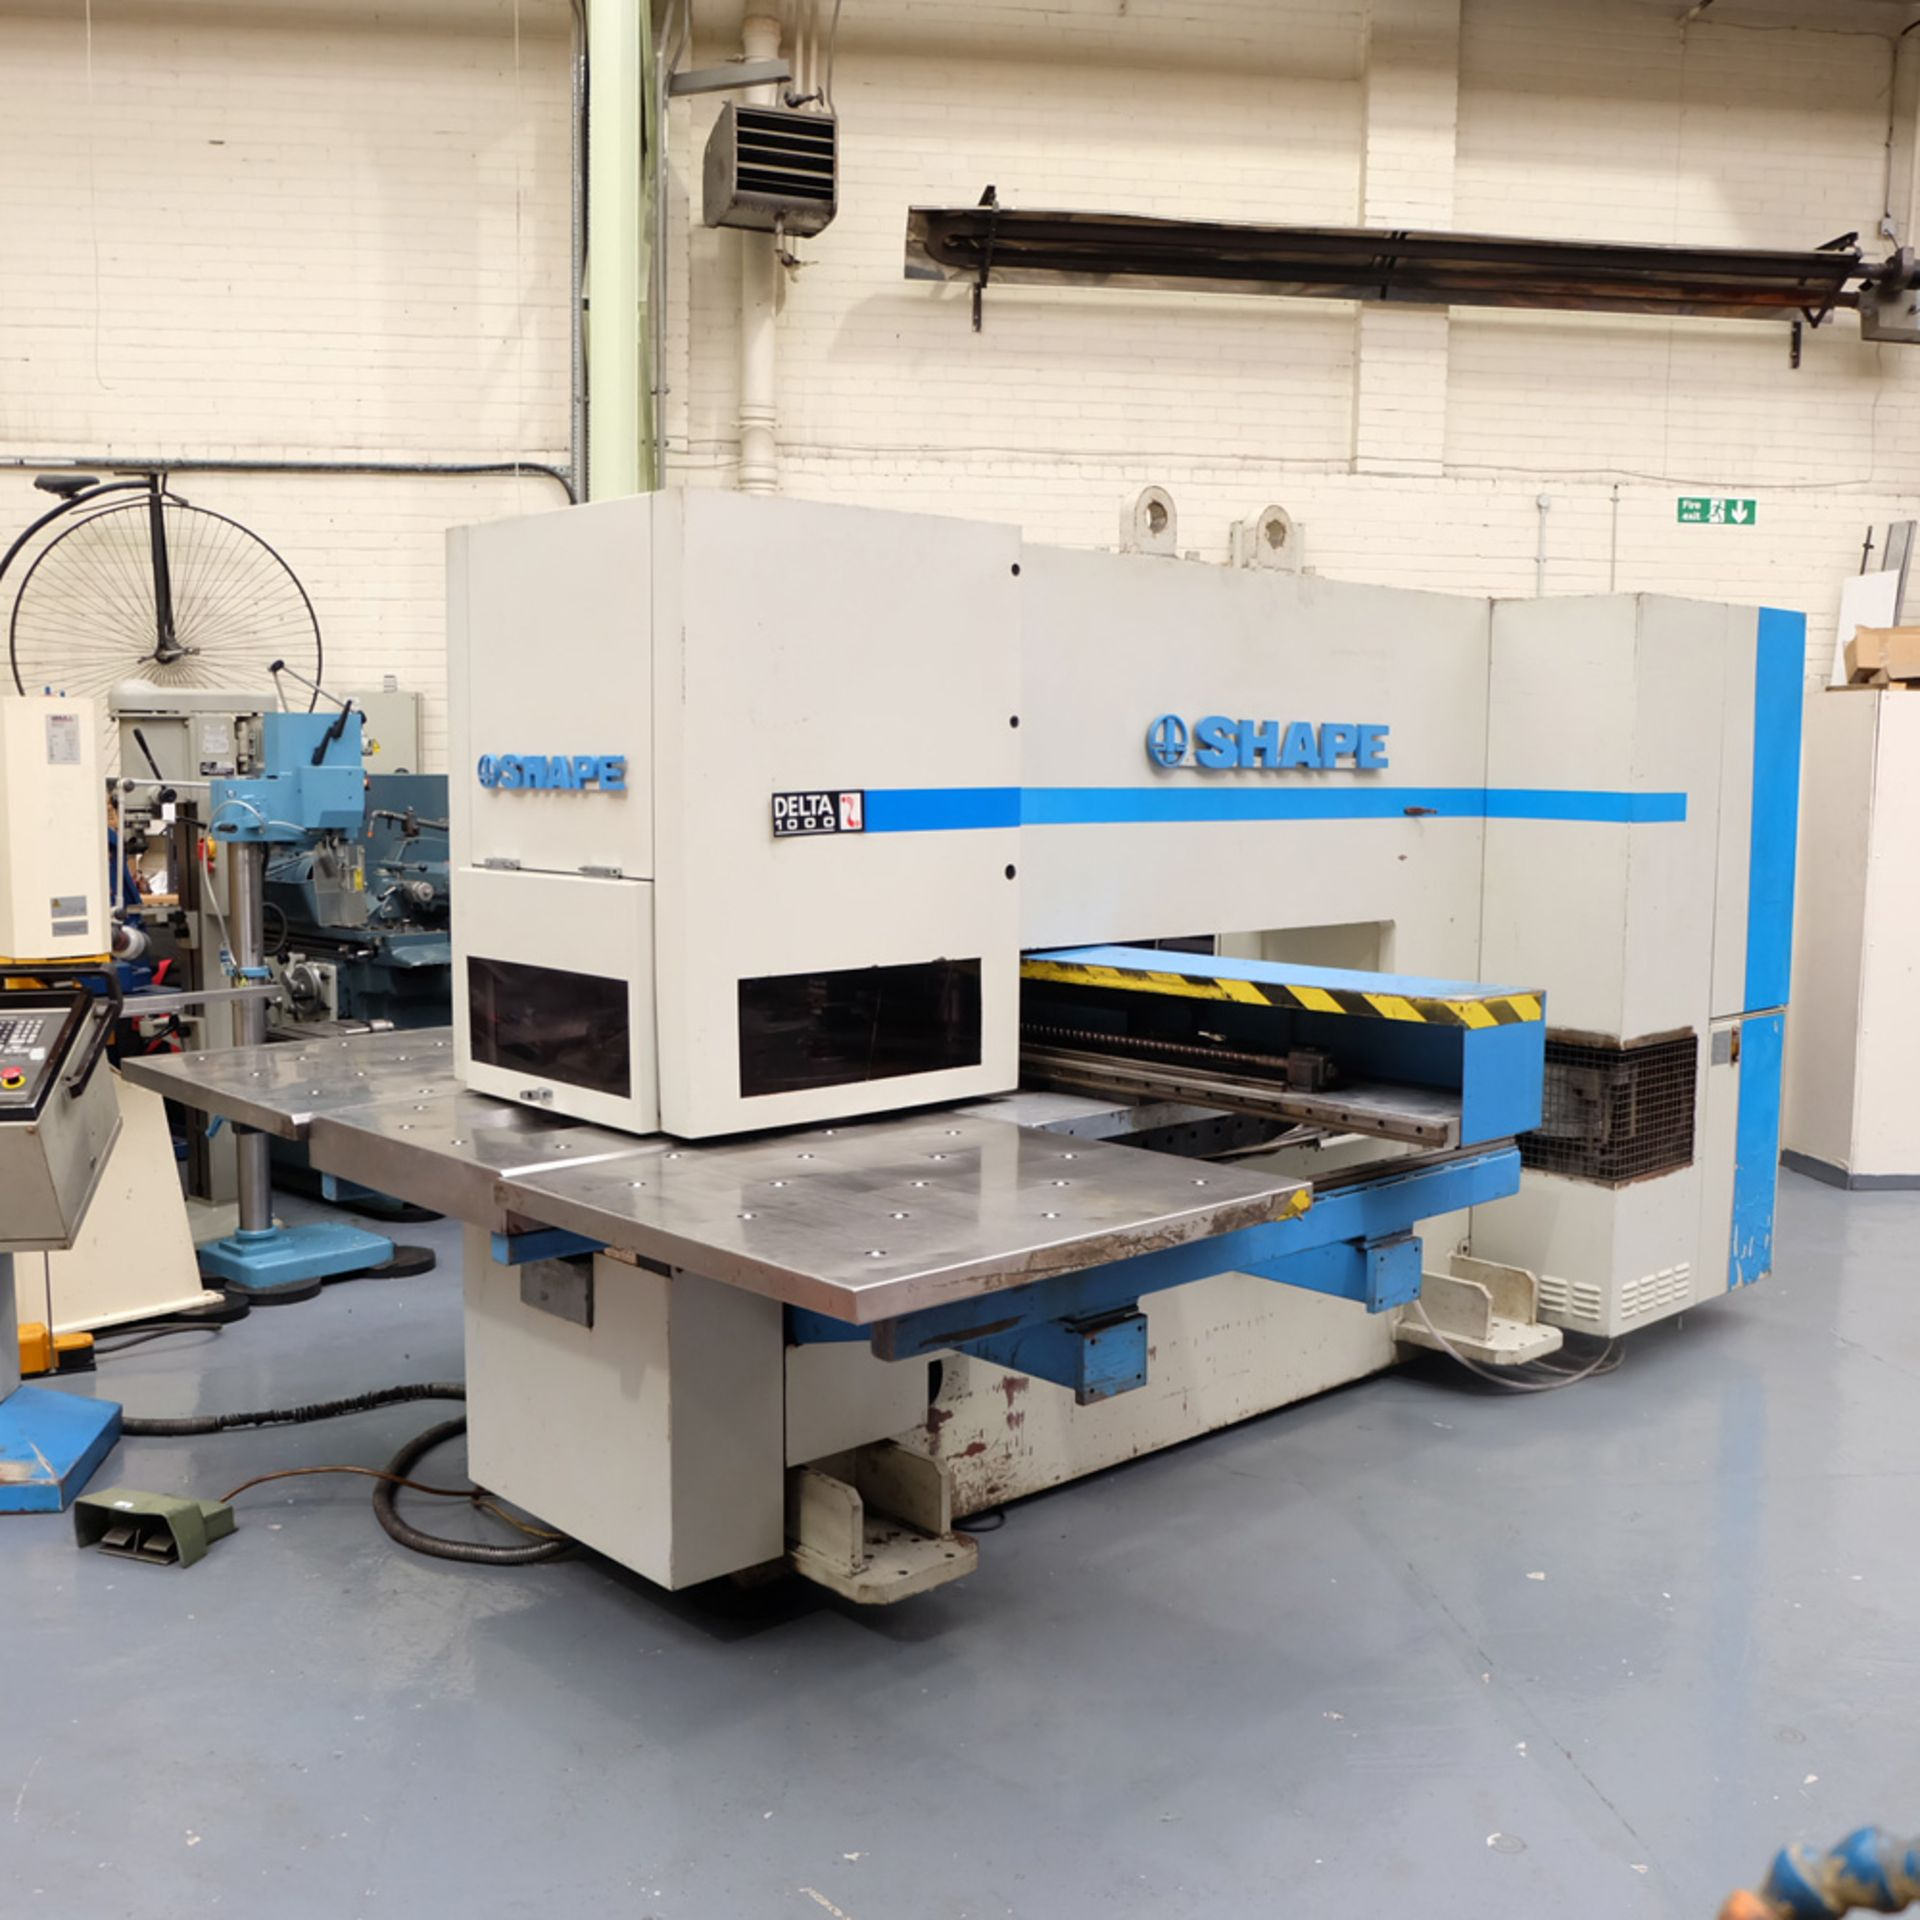 LVD SHAPE Model Delta 1000 Thick CNC Punching Machine.With Fanuc MNC 4000 Control.Capacity: 20 Tons. - Image 2 of 19